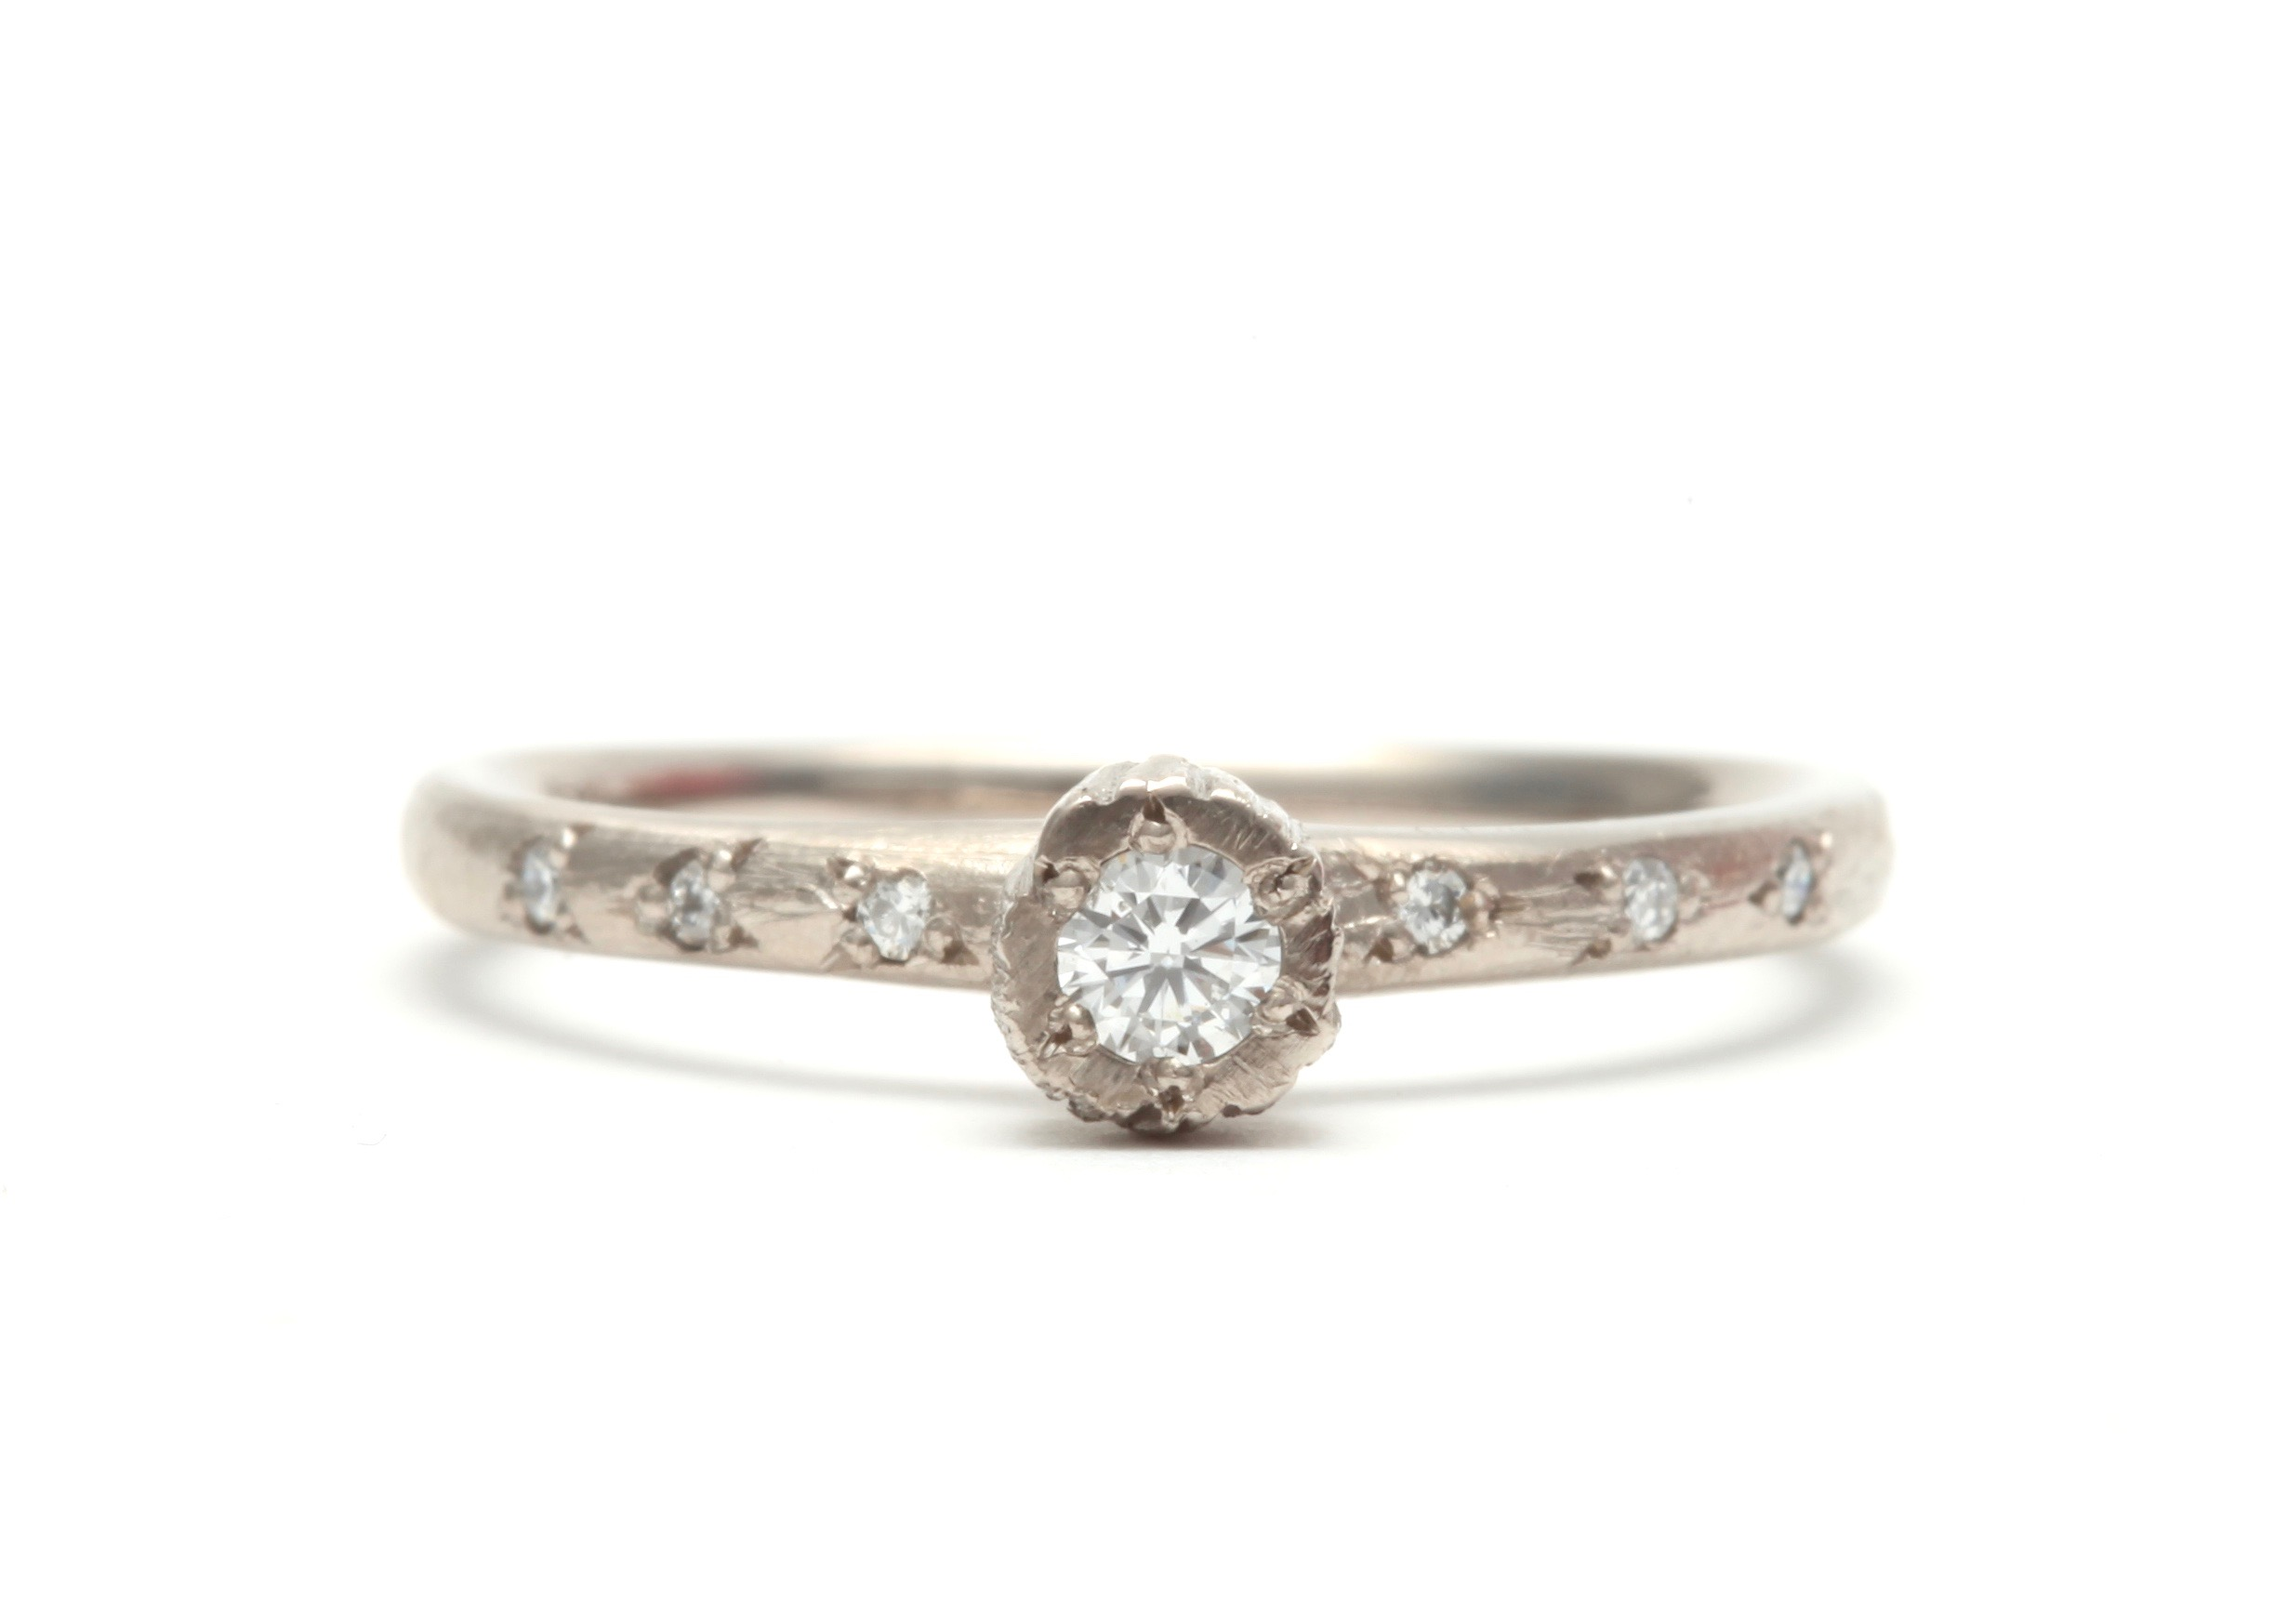 Precious Little Rock Ring in white gold with white diamonds - available through  Pieces of Eight